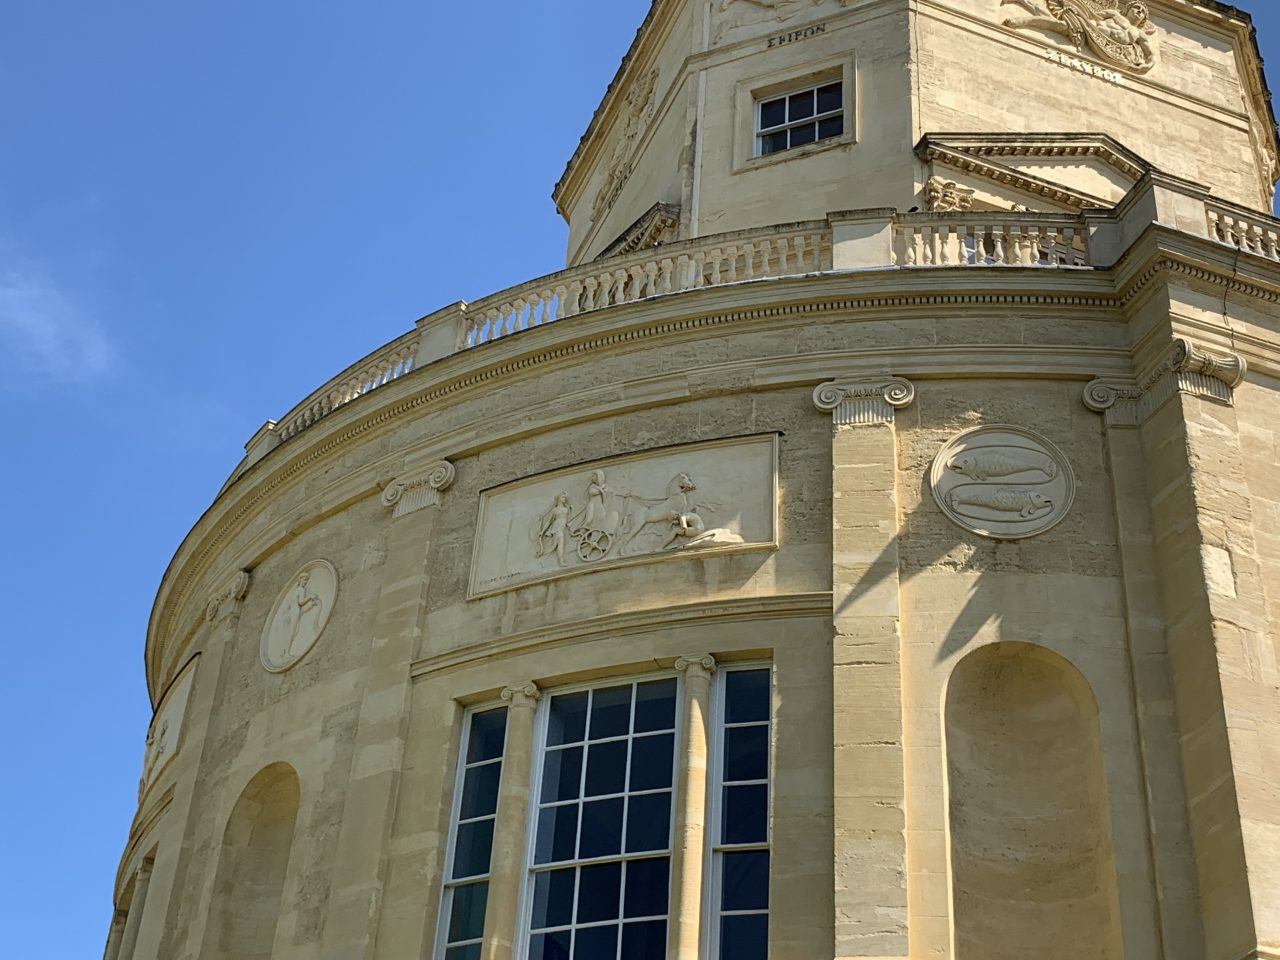 The signs of the zodiac visible on the upper balcony of the Radcliffe Observatory